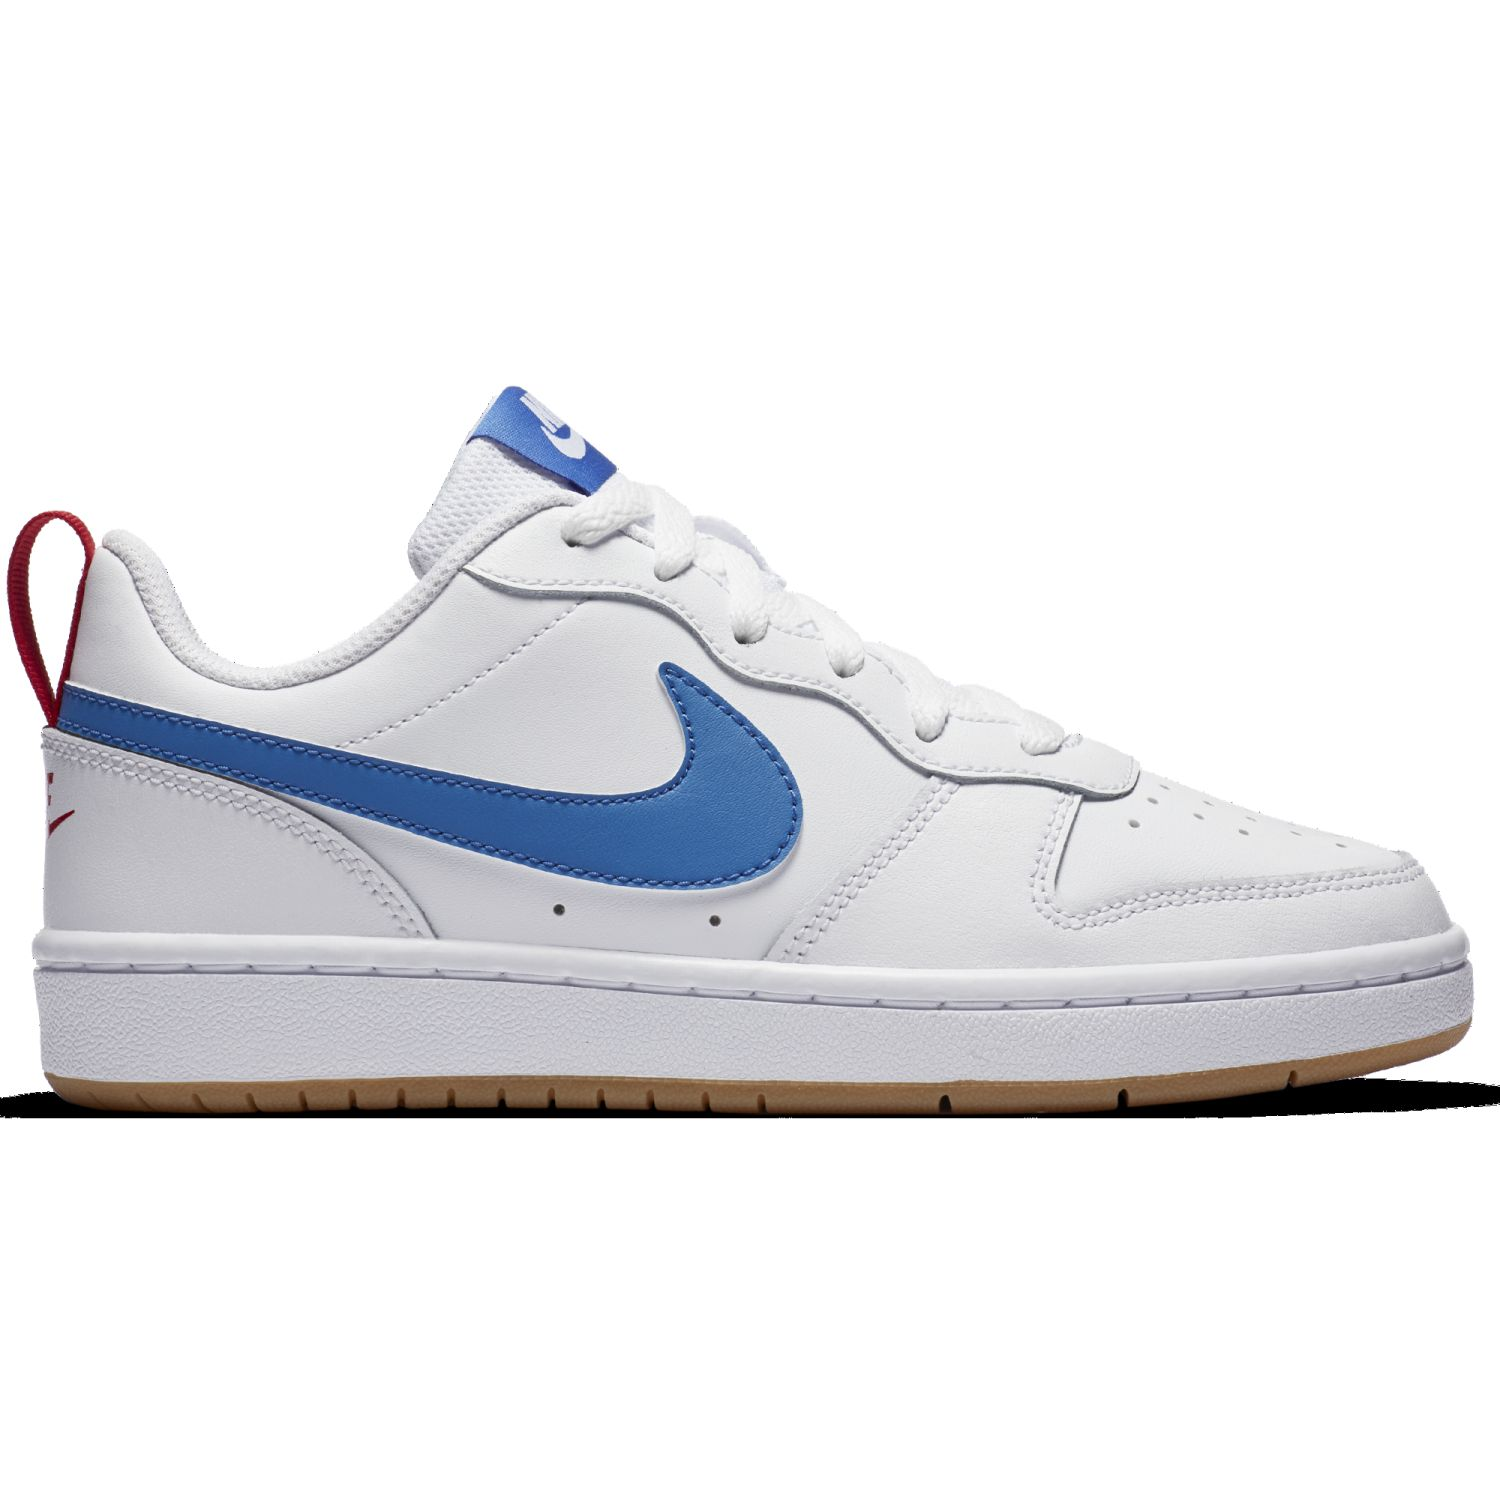 Nike Court Borough Low 2 Bg Blanco / azul Para caminar